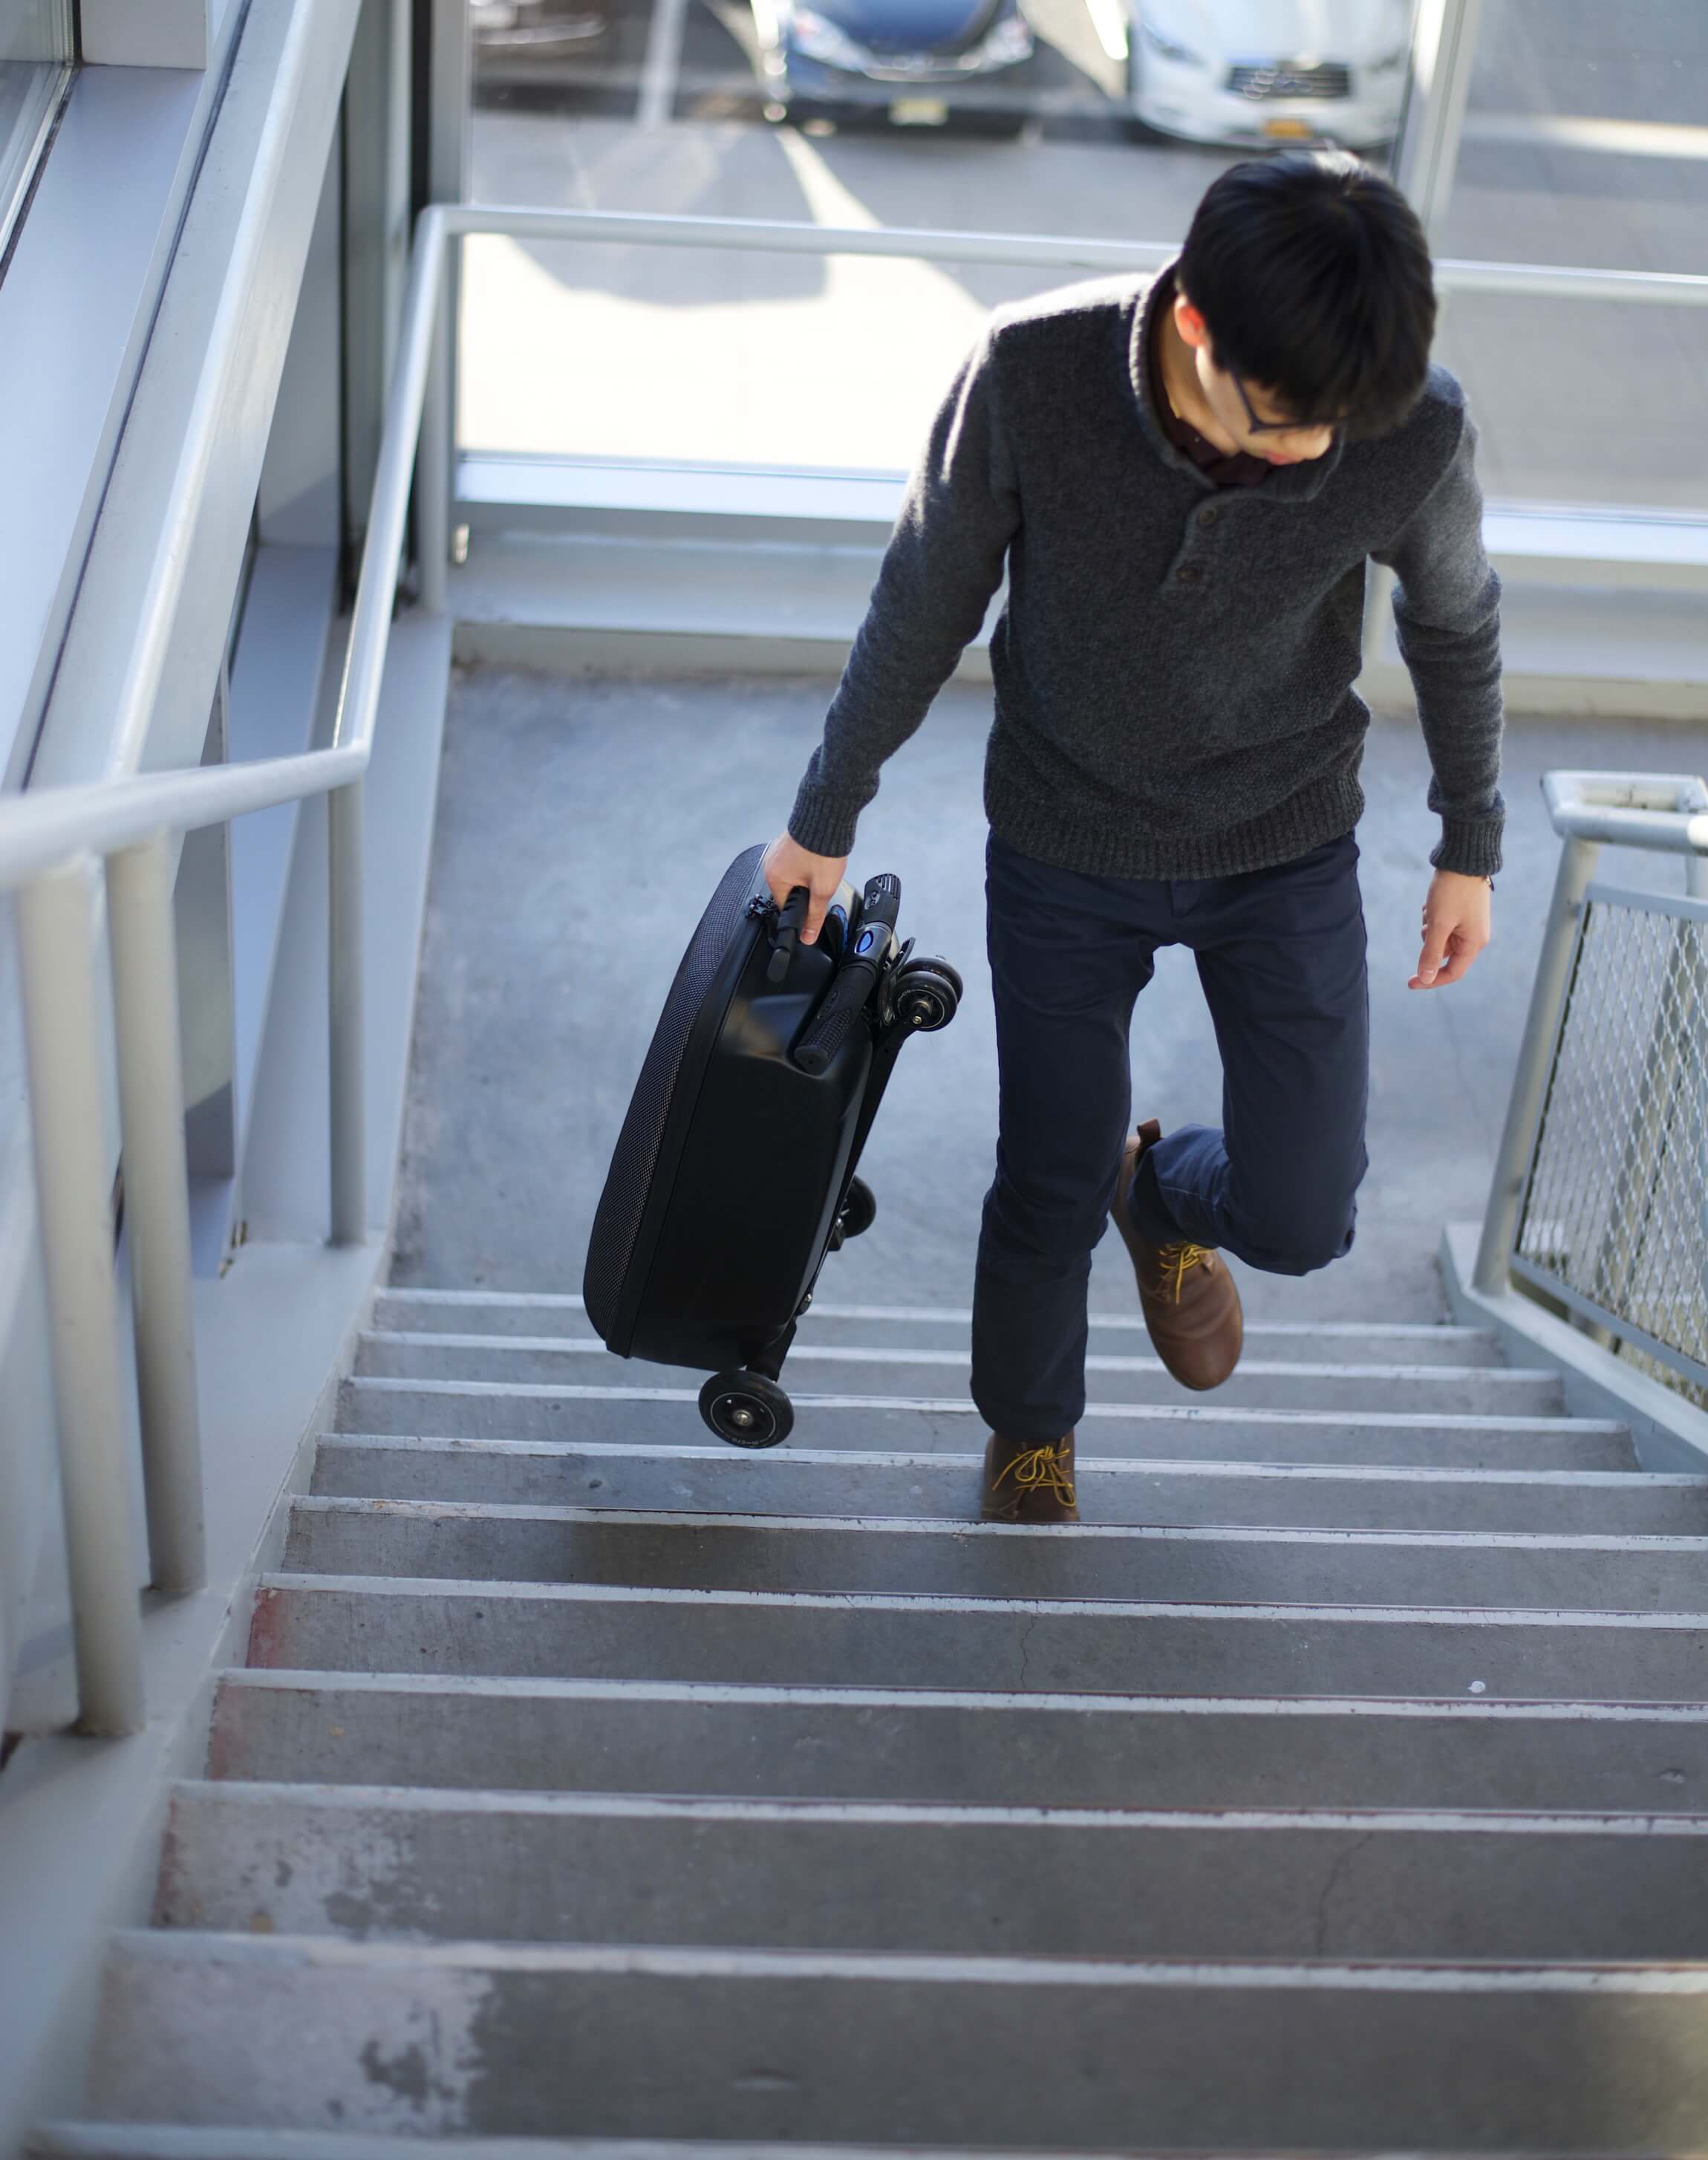 Carrying the Micro Luggage up the stairs by its handle